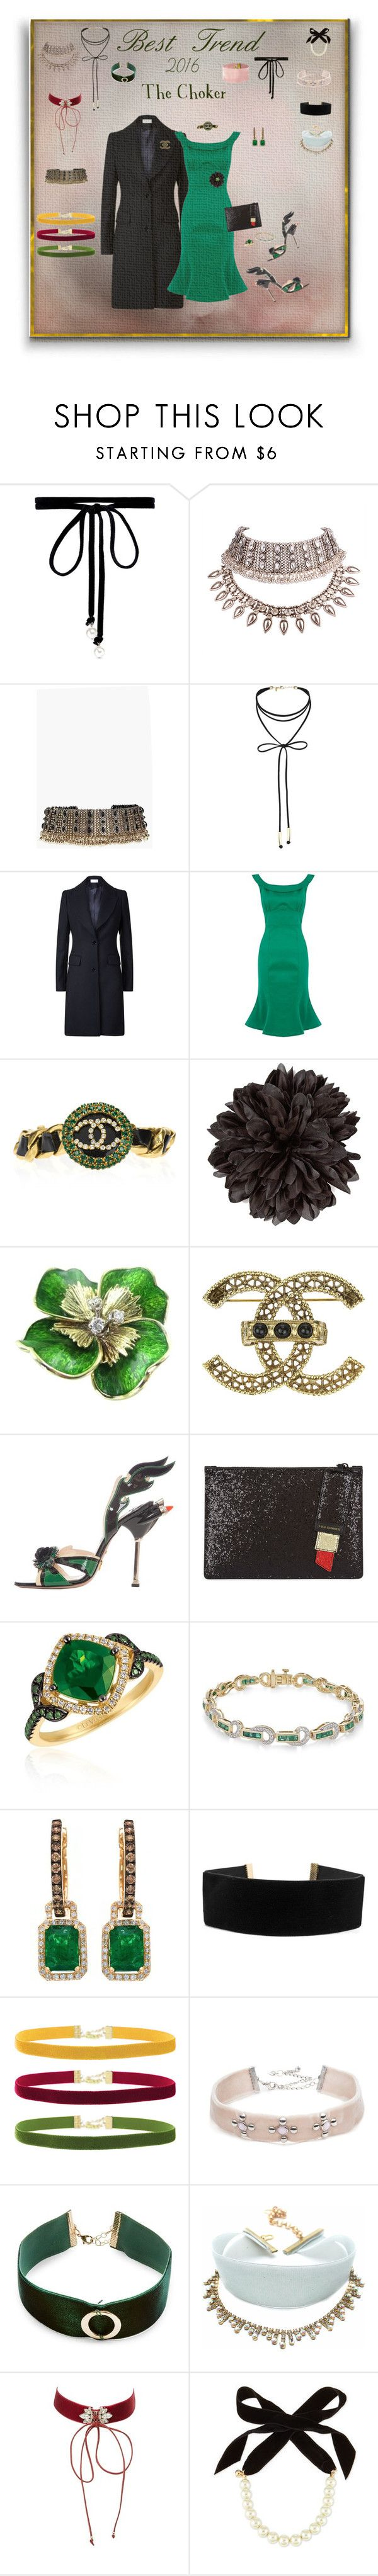 """Choker Best Trend of 2016"" by deborah-518 ❤ liked on Polyvore featuring Joomi Lim, WithChic, Boohoo, Miss Selfridge, Reiss, Chanel, Gucci, Prada, Lulu Guinness and LE VIAN"